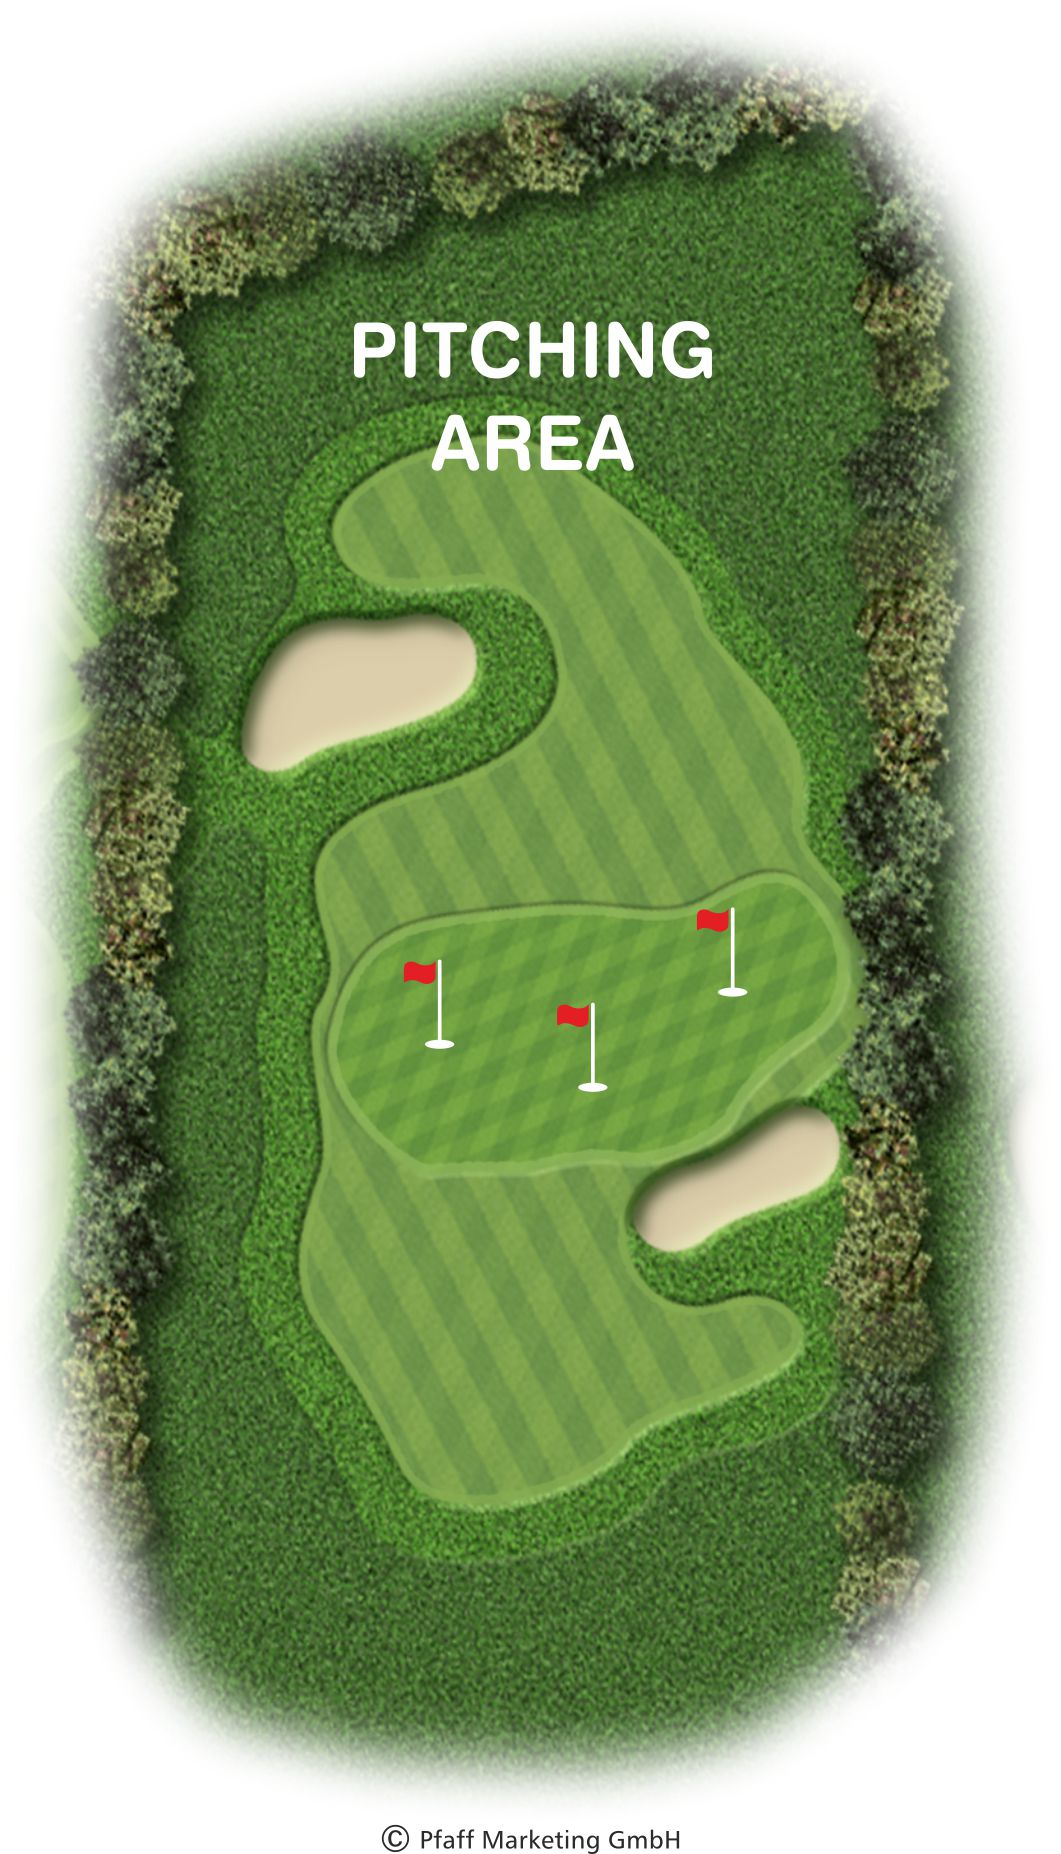 Pitching Area